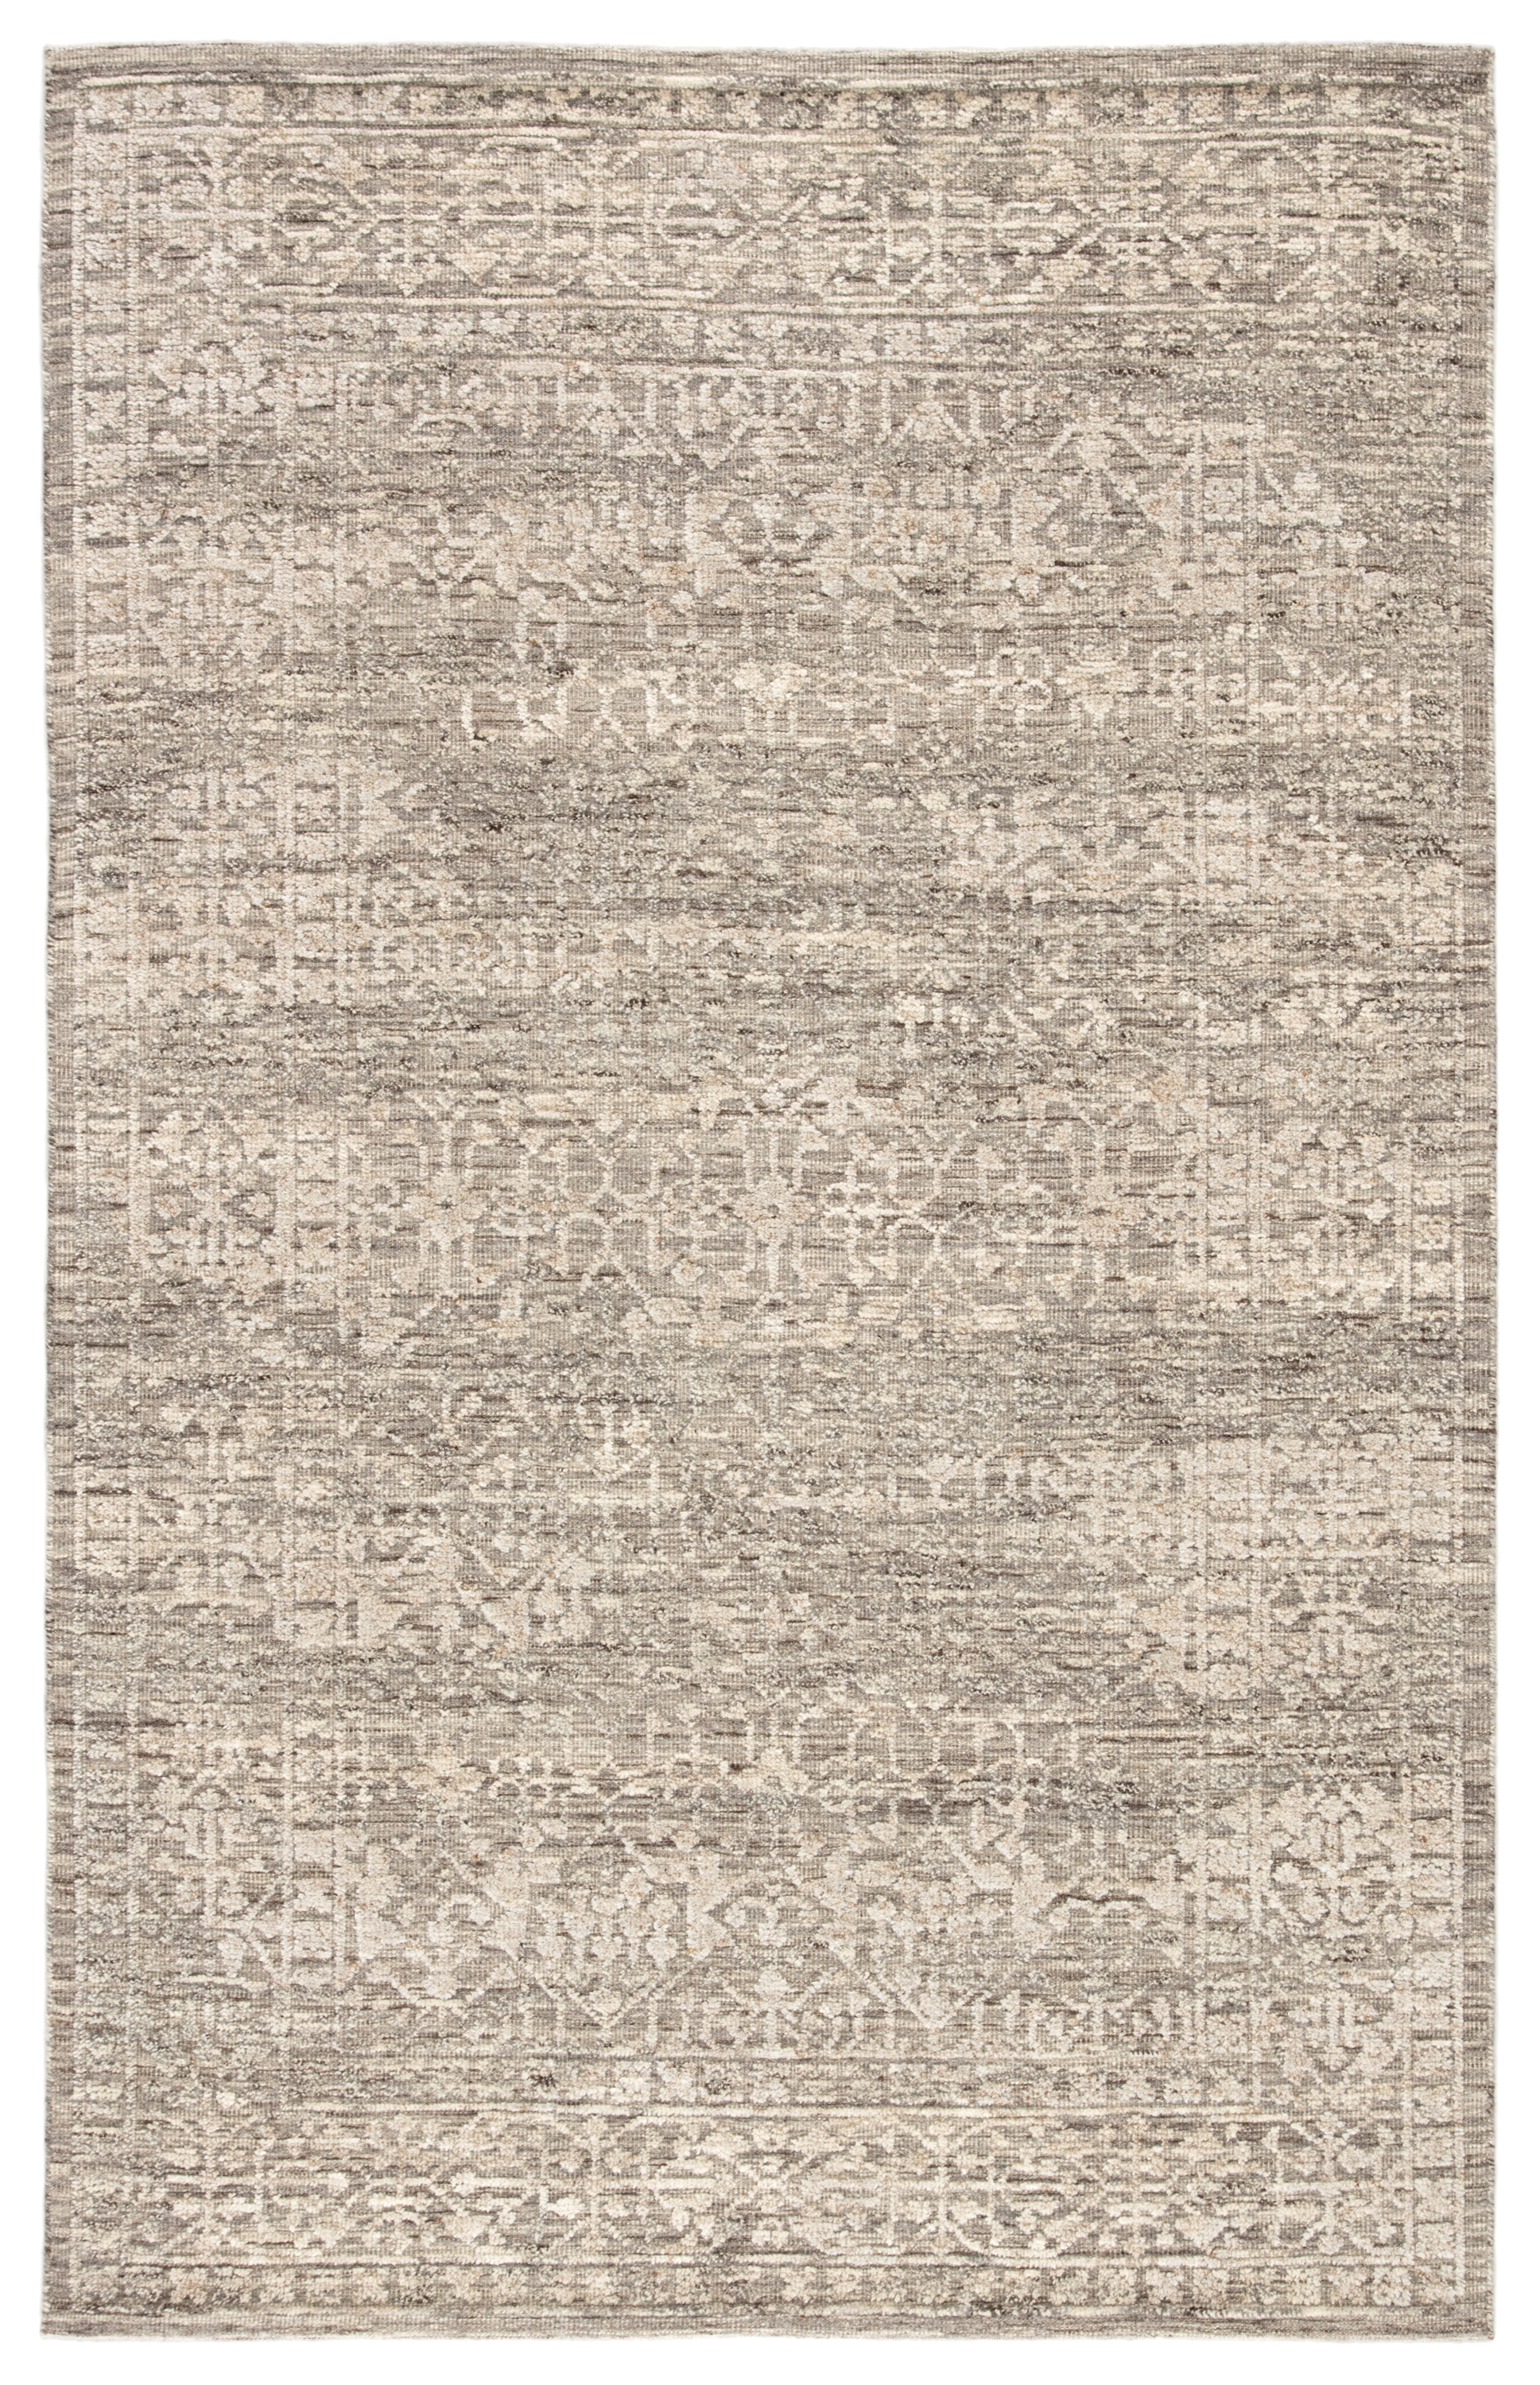 Jaipur Living Sian Hand-knotted Floral Gray/ Beige Area Rug